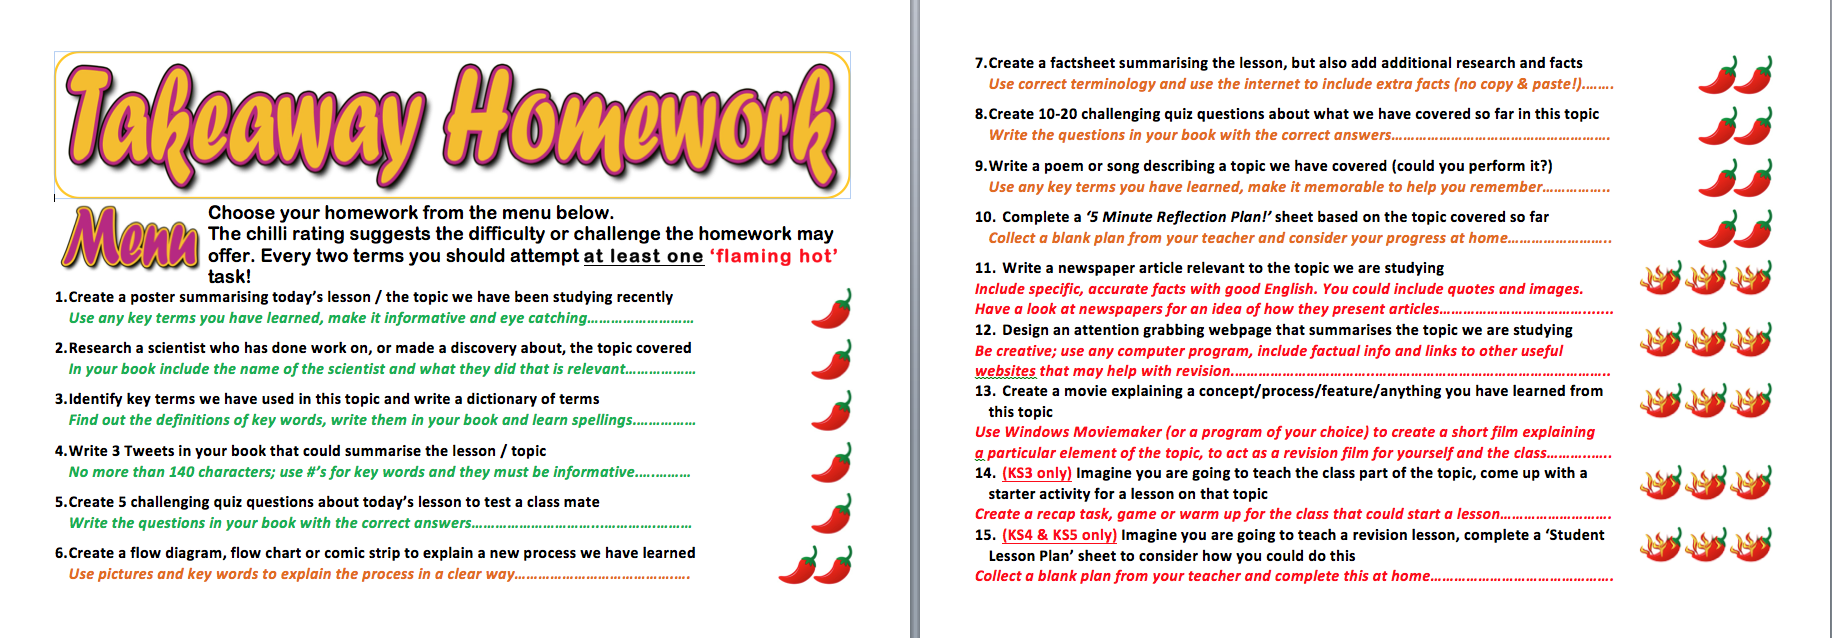 no homework research Write an essay service homework research sample phd thesis proposal homework does not help students learn.